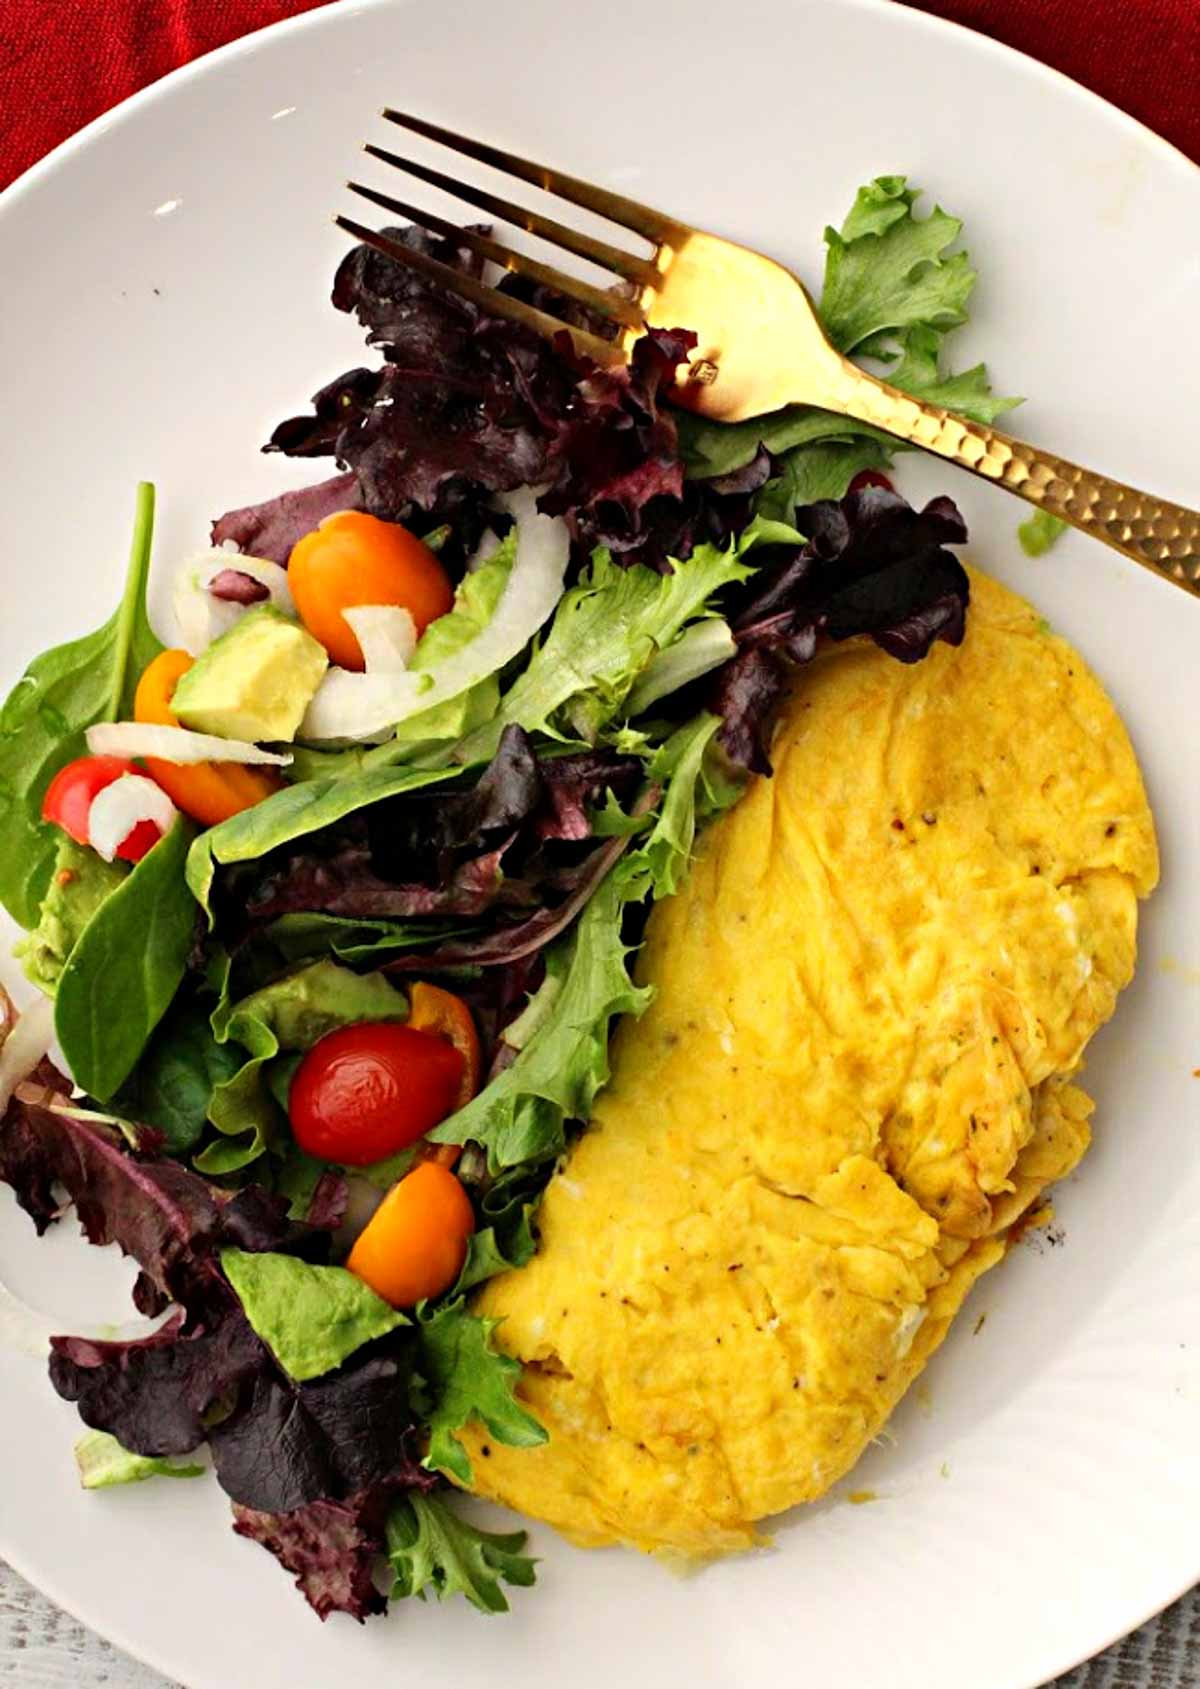 Fines Herbs Omelette with a side salad